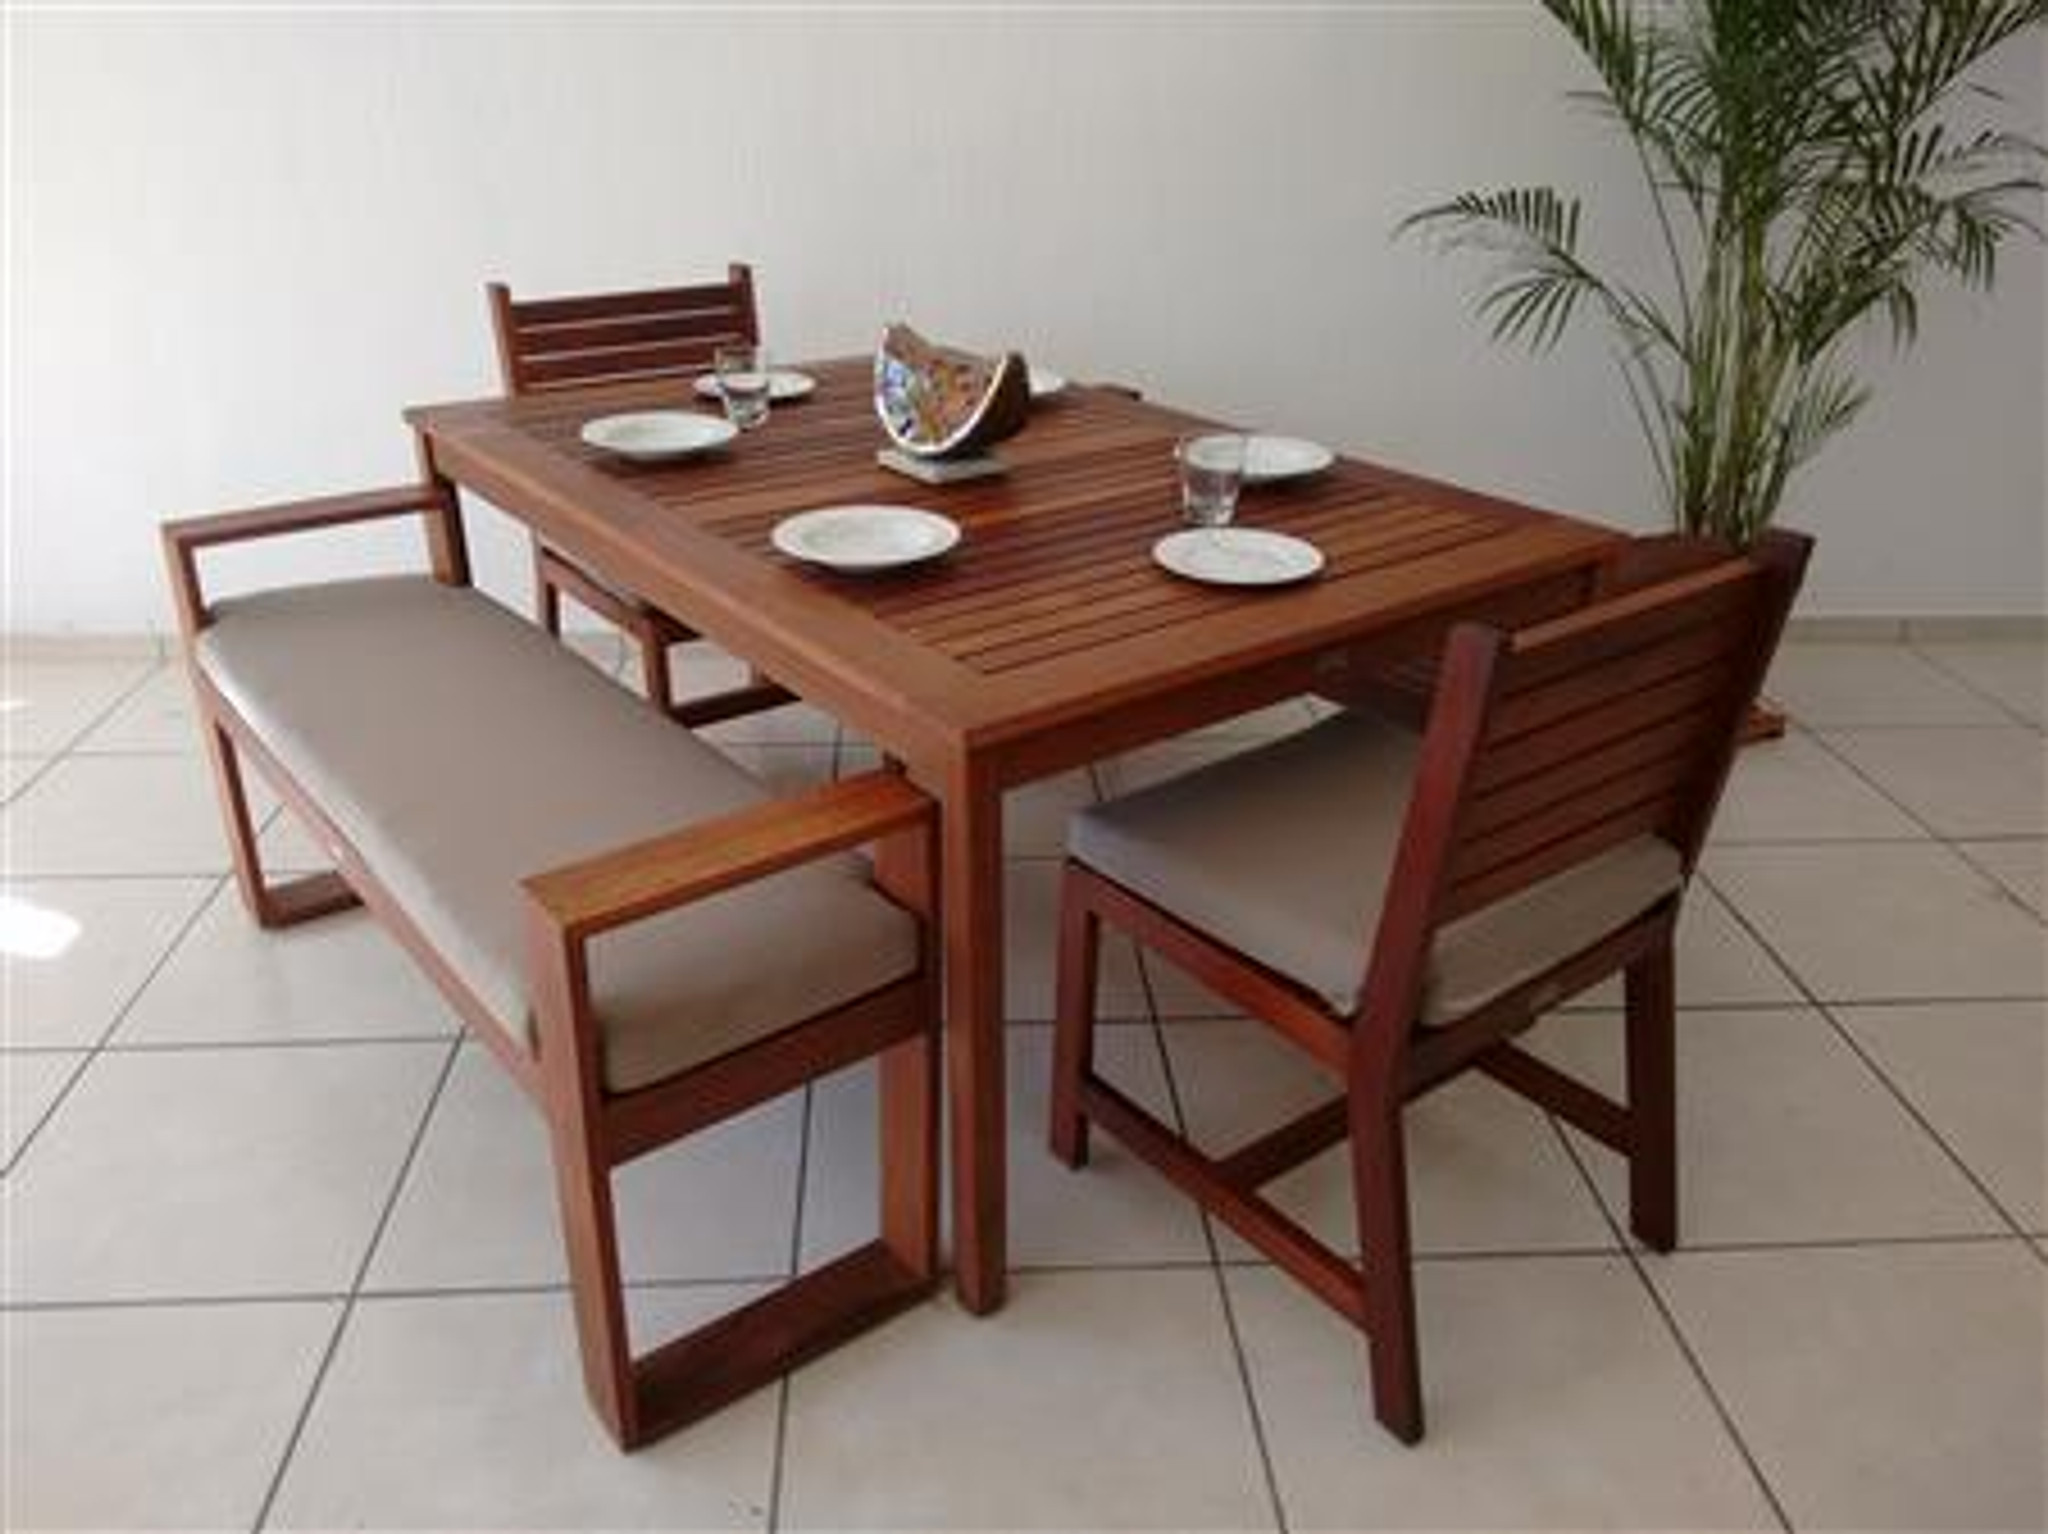 MALLORCA NATURAL WOODEN DINING ROOM FOR 6 PEOPLE W/ 2 ...